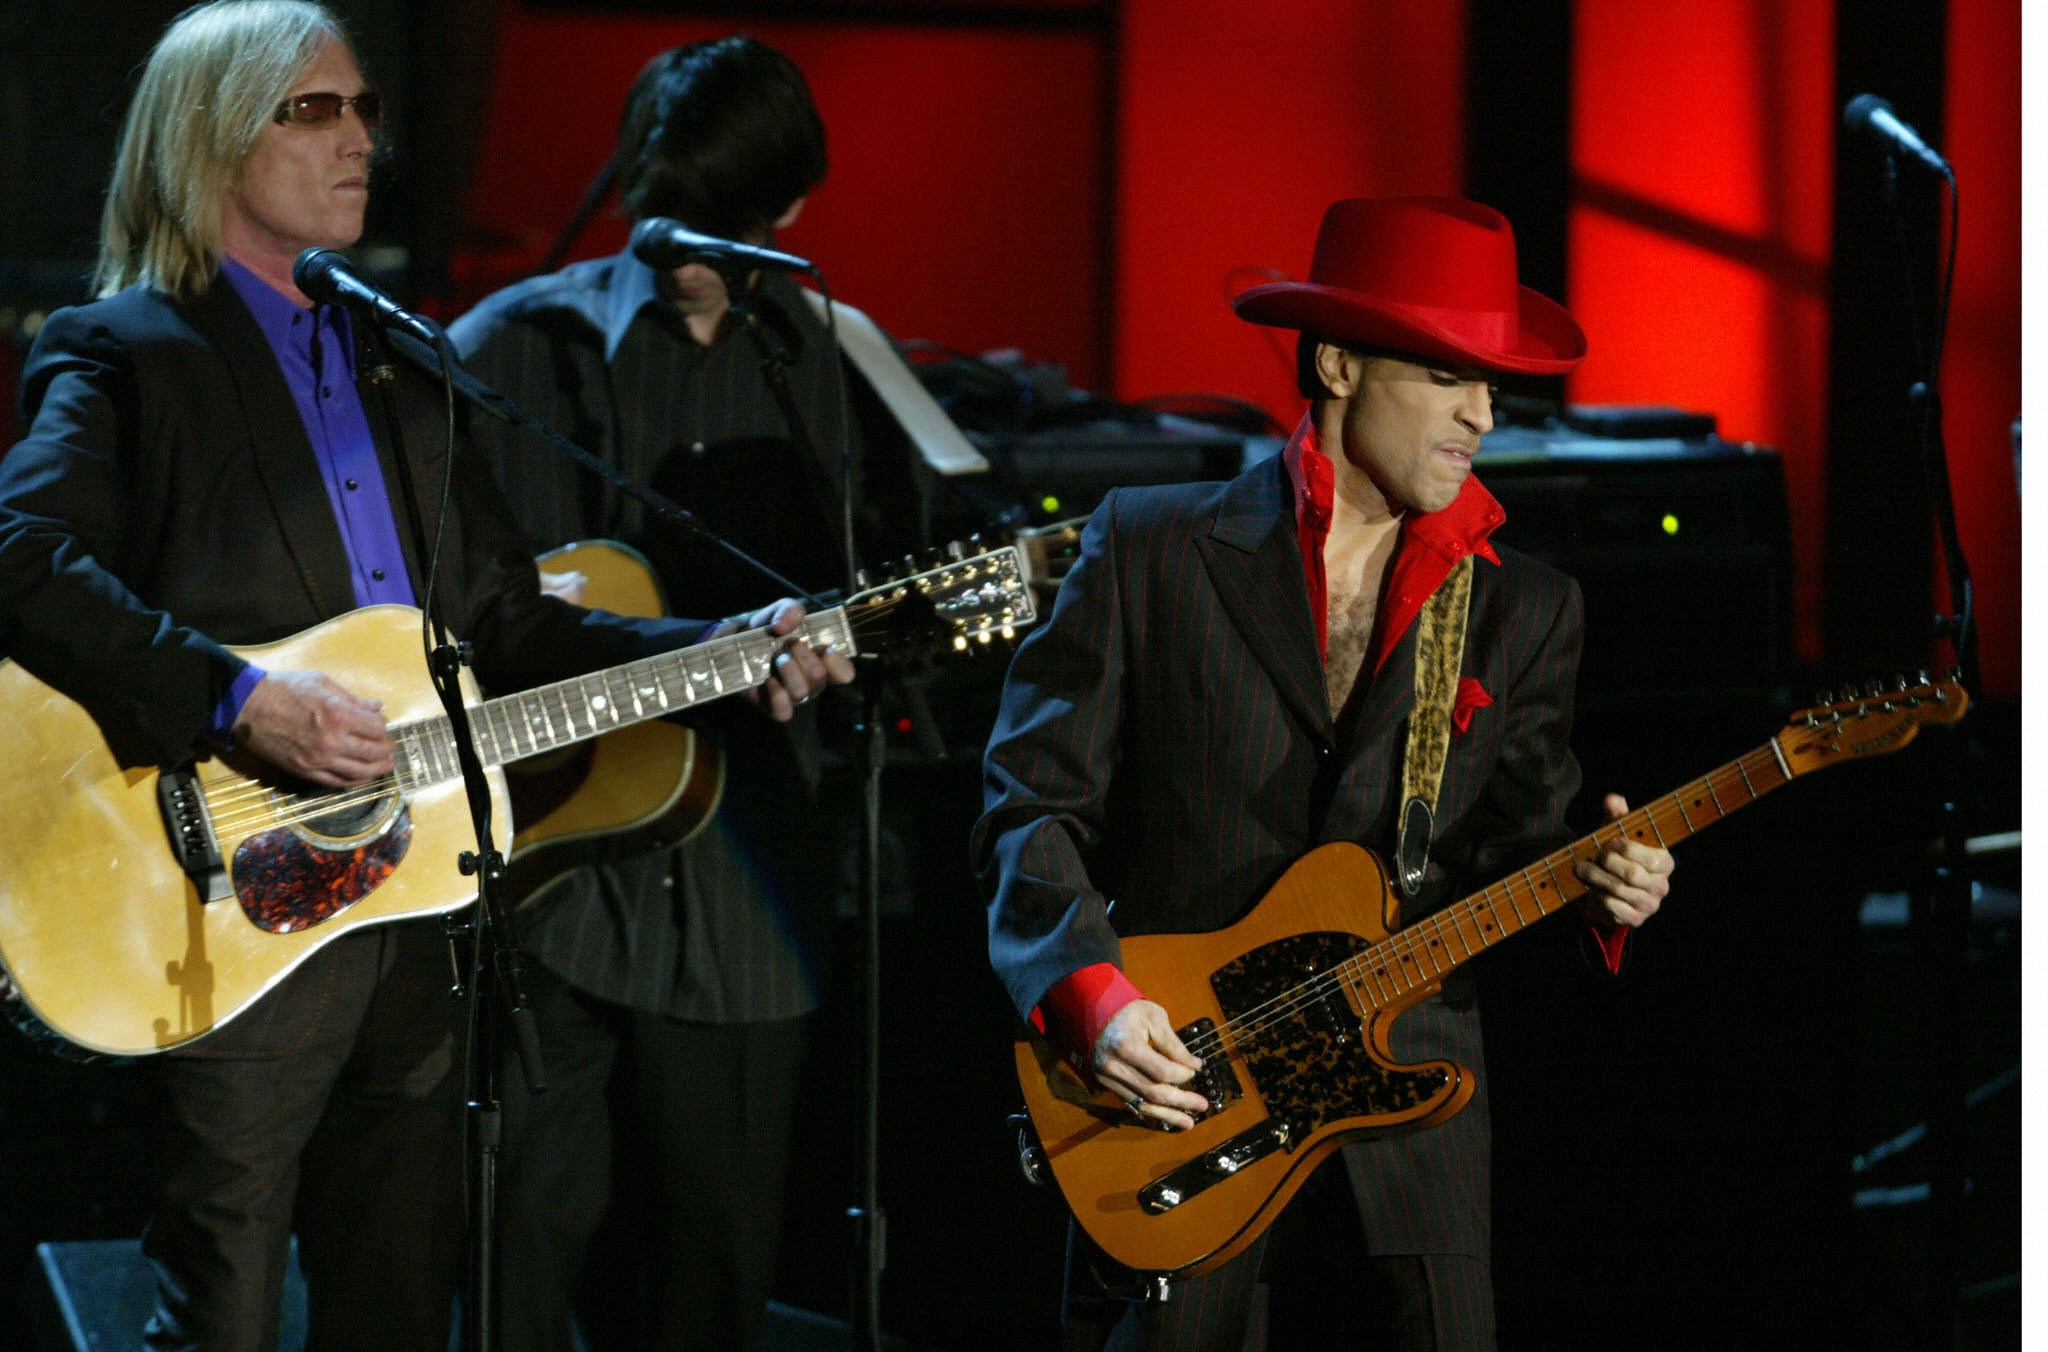 Prince performs along with Tom Petty at the 19th Annual Rock and Roll Hall of Fame Induction Ceremony in New York City, 2004.